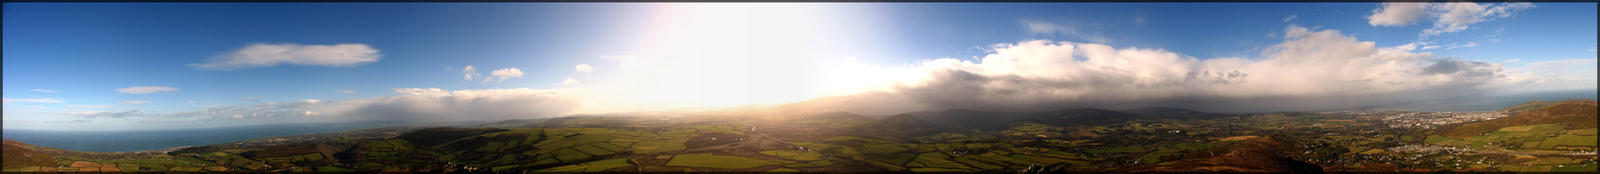 Great Sugar Loaf panorama view by aaaxxx